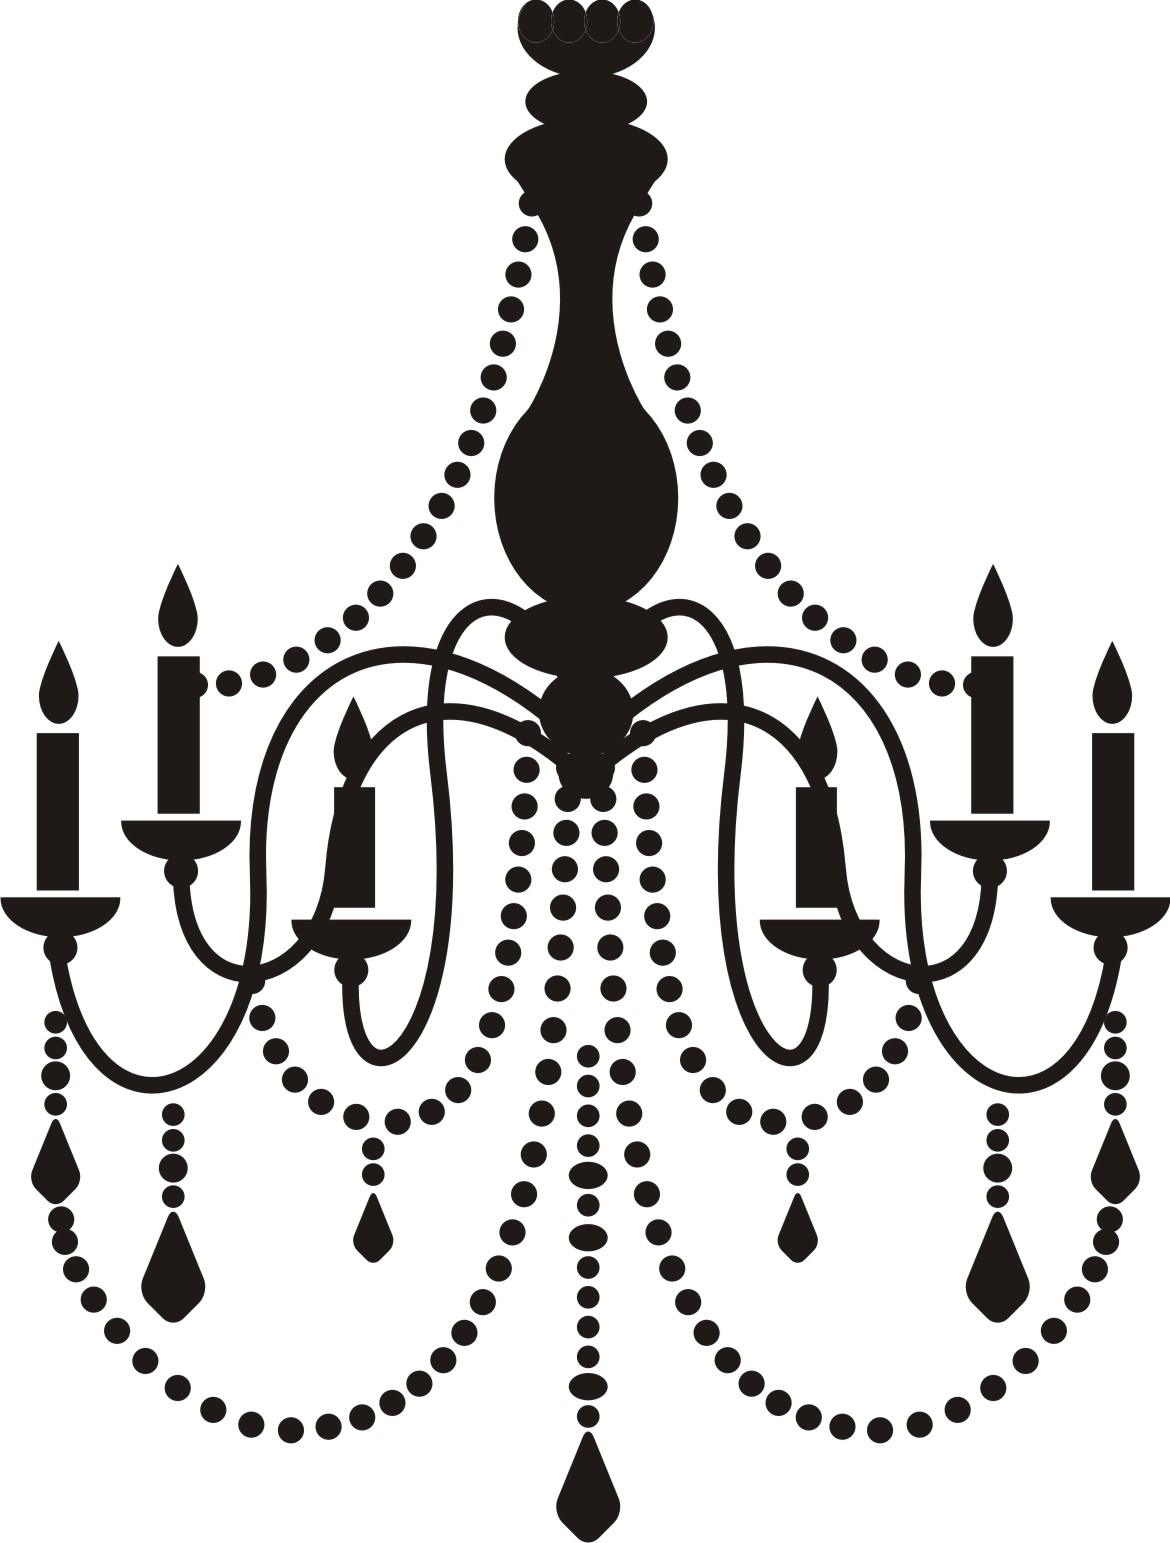 Chandelier silhouette vector at getdrawings free for personal 1170x1543 clip art black chandelier clip art aloadofball Images